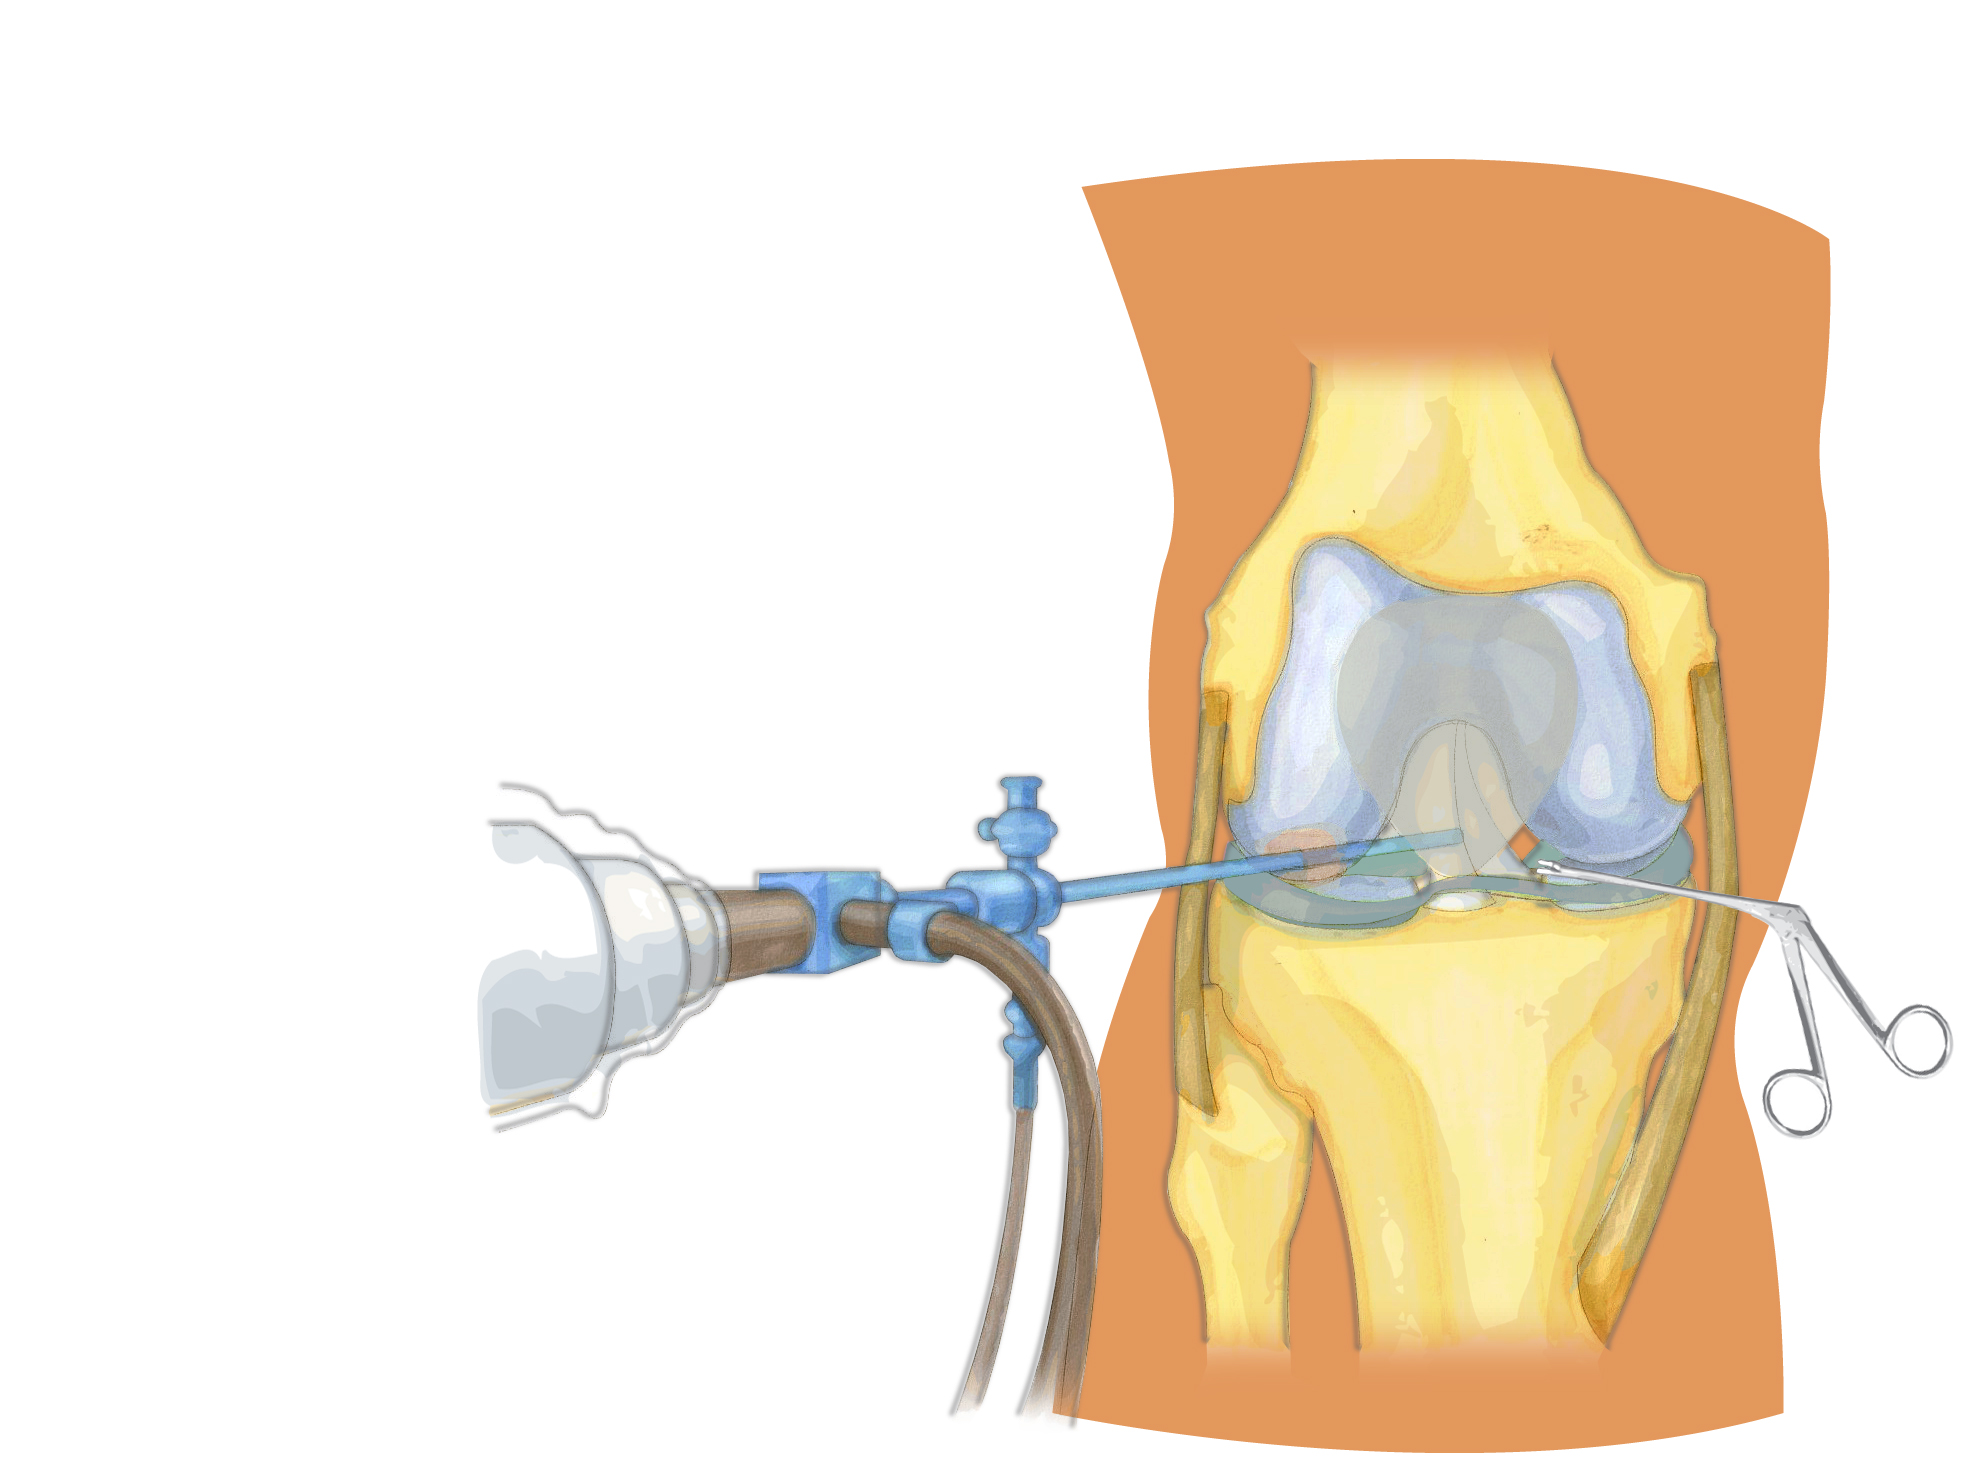 Knee meniscus: rupture, treatment, restoration of functionality 20